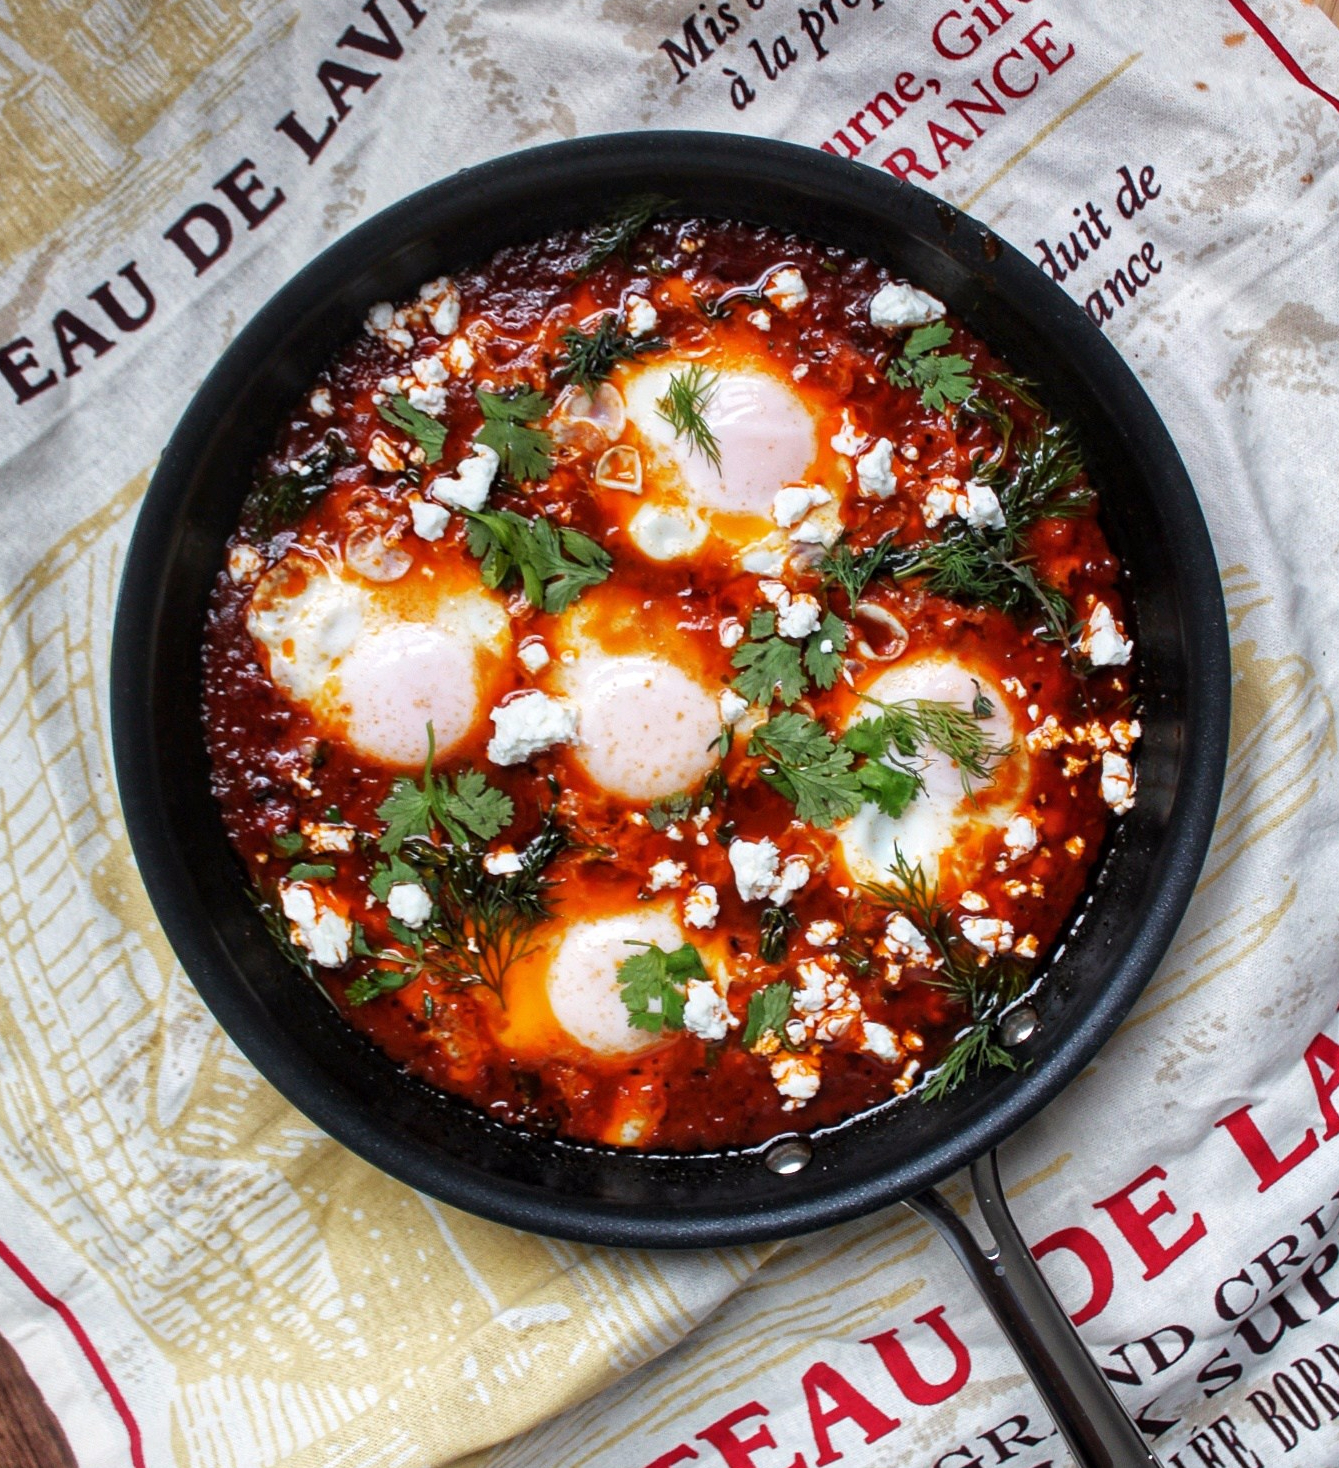 Winter Spiced Shakshouka